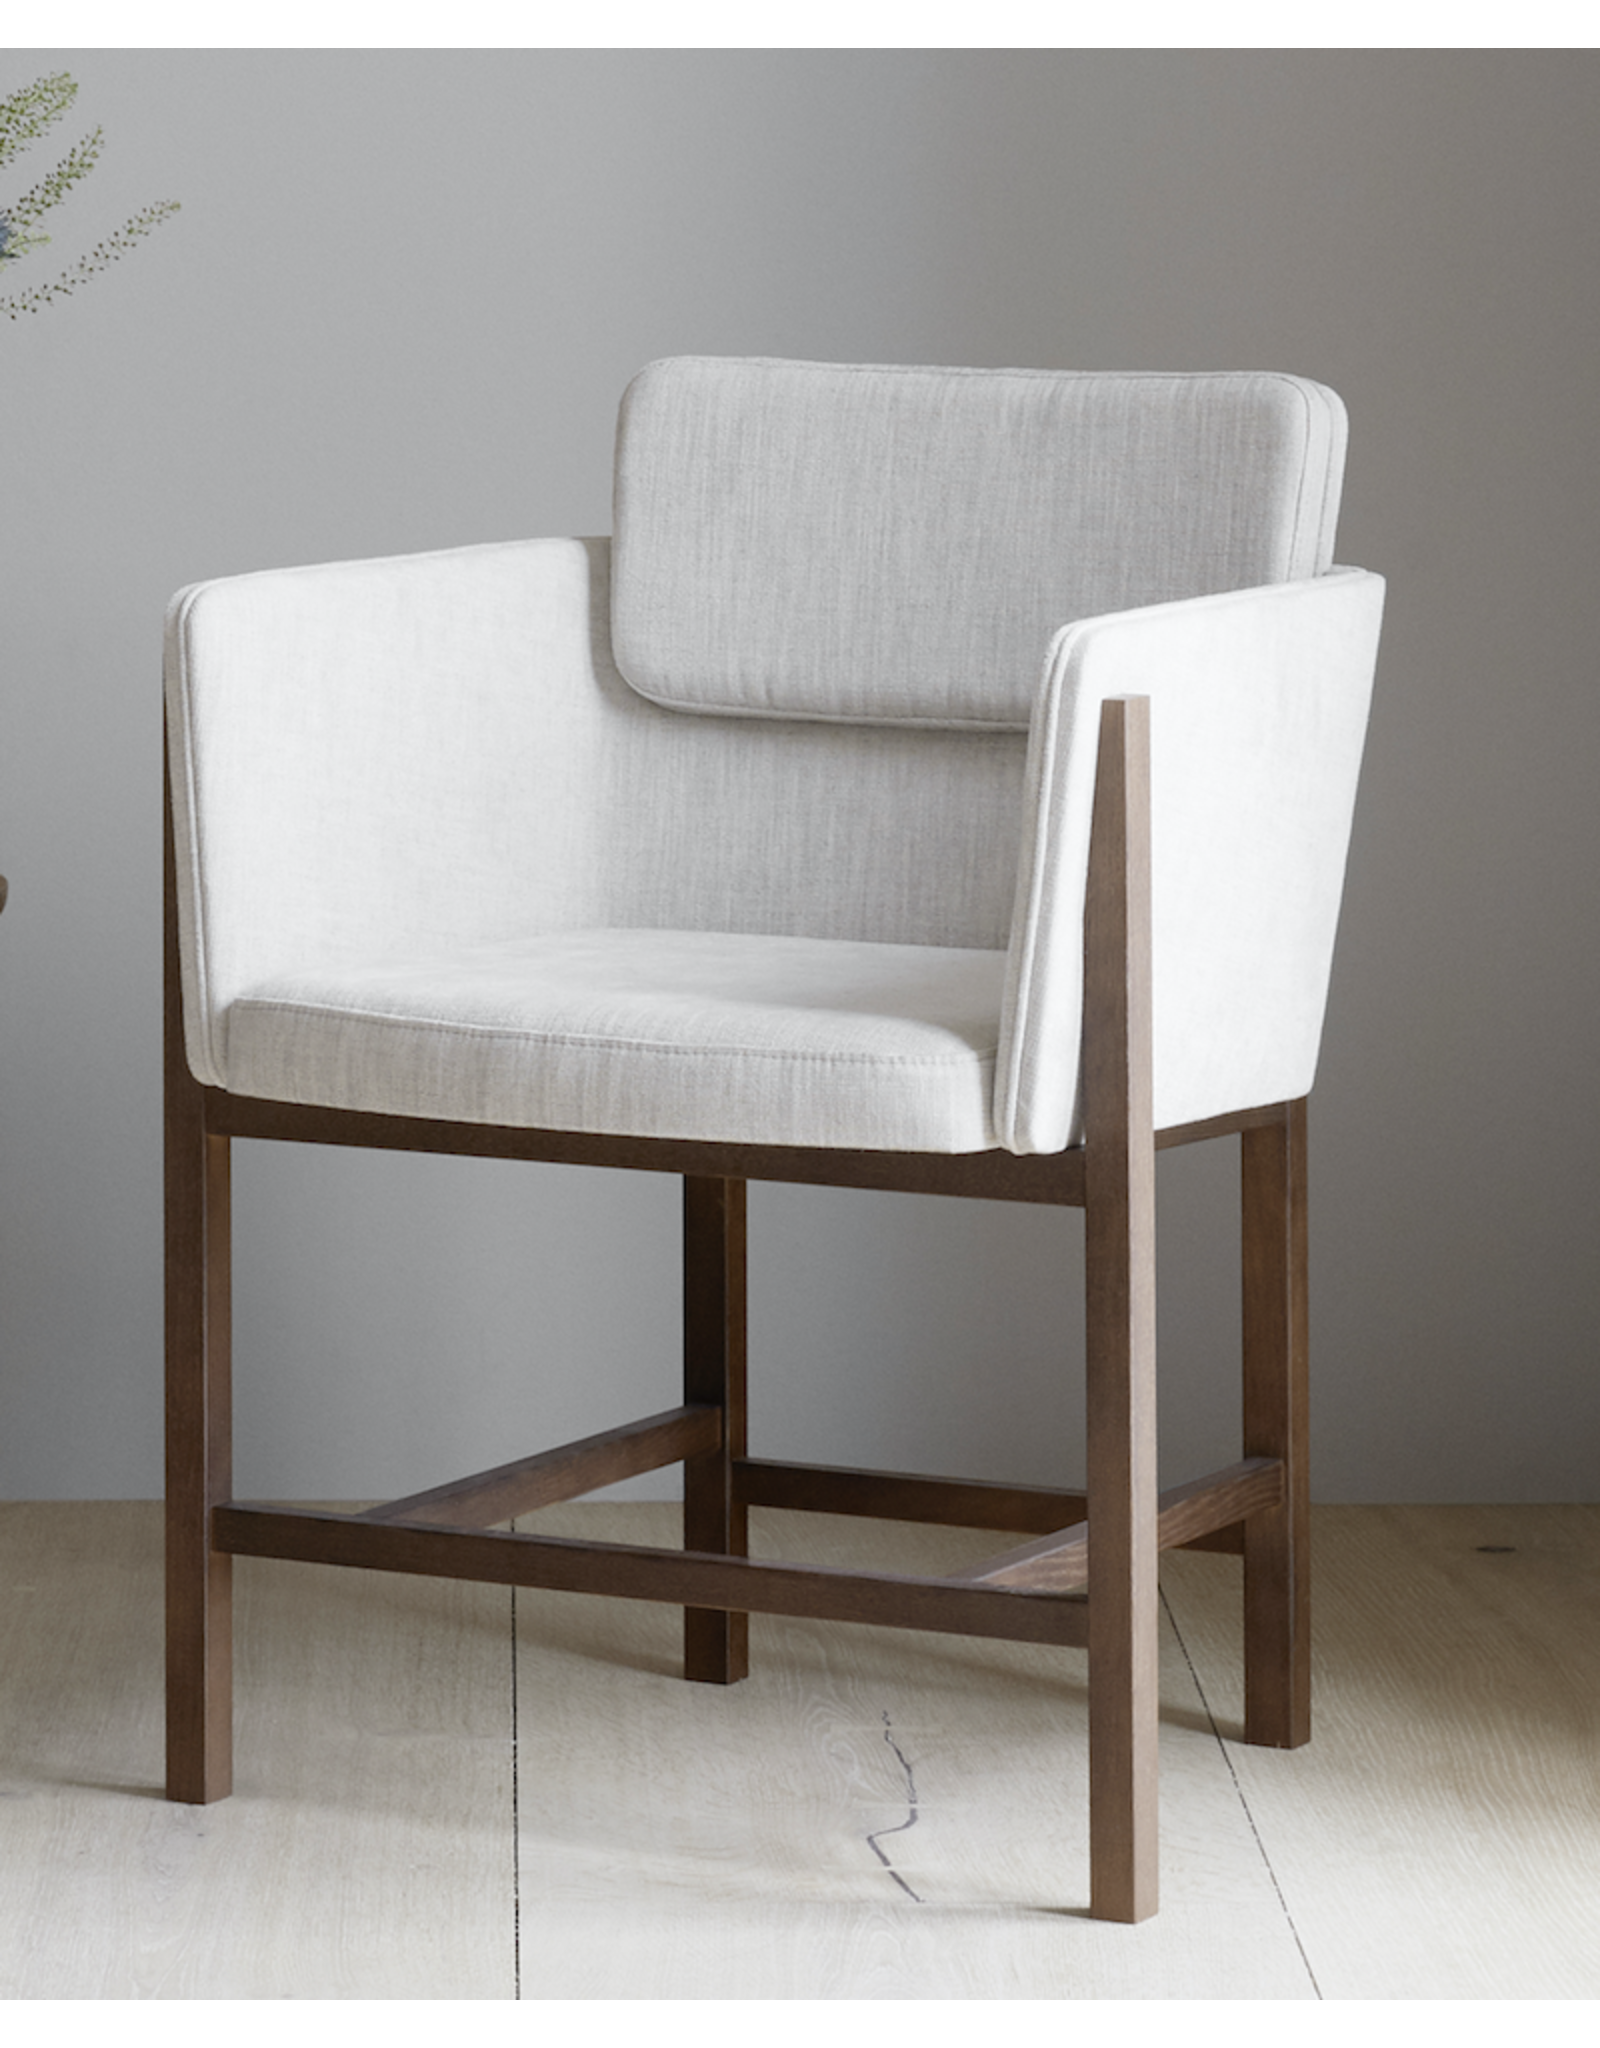 FREDERICIA (DISCONTINUED) 3320 DIN CHAIR IN SMOKED OAK